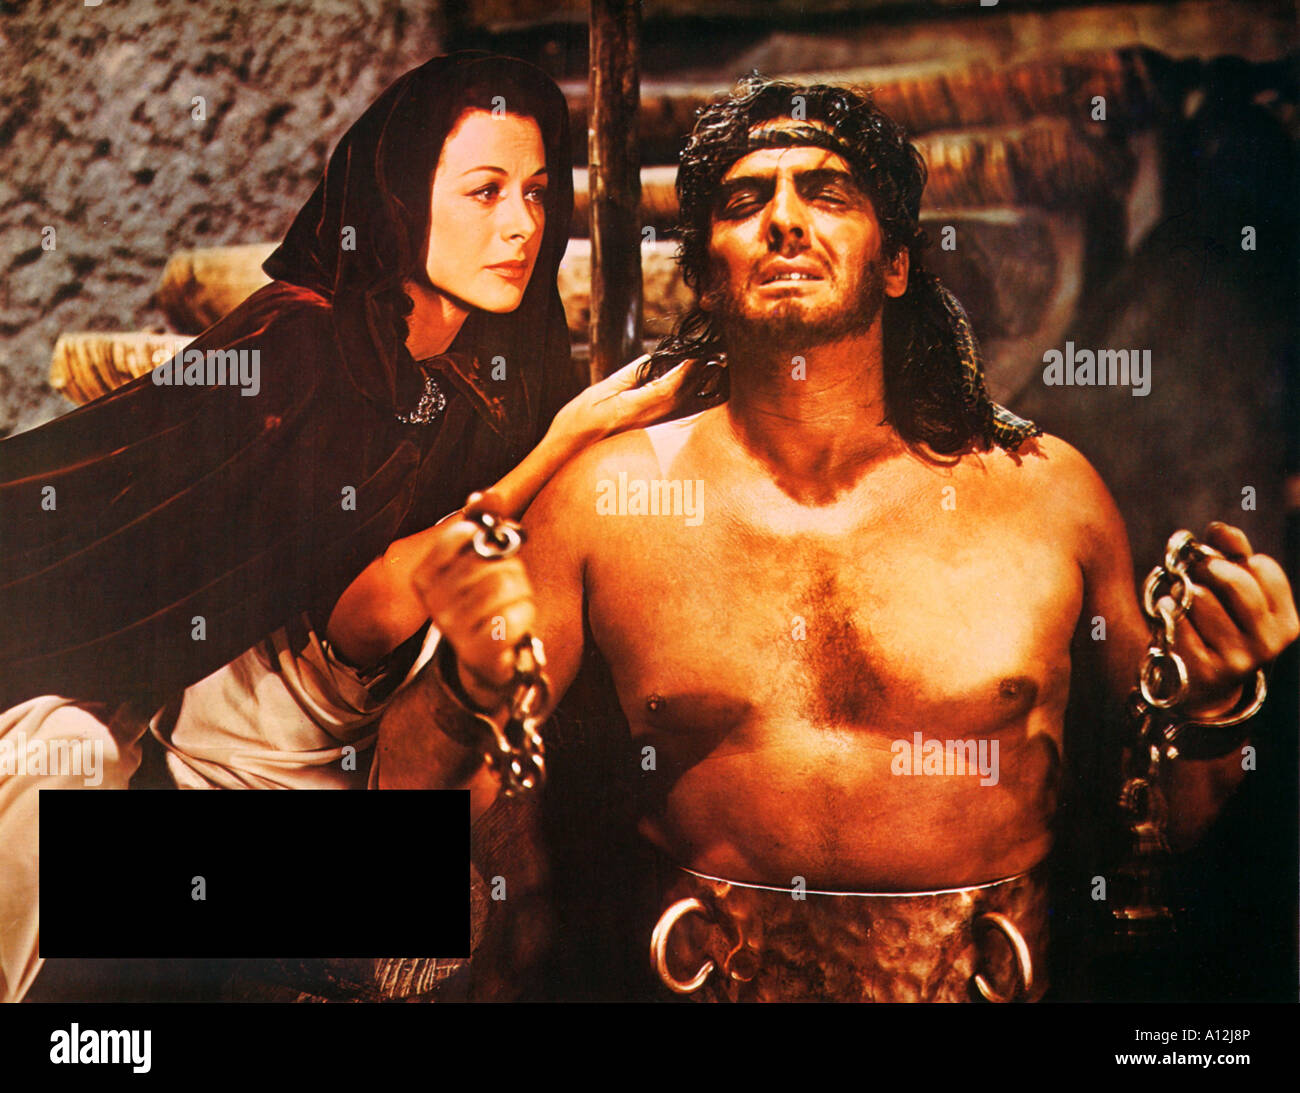 http://c8.alamy.com/comp/A12J8P/samson-and-delilah-year-1949-director-cecil-b-demille-victor-mature-A12J8P.jpg